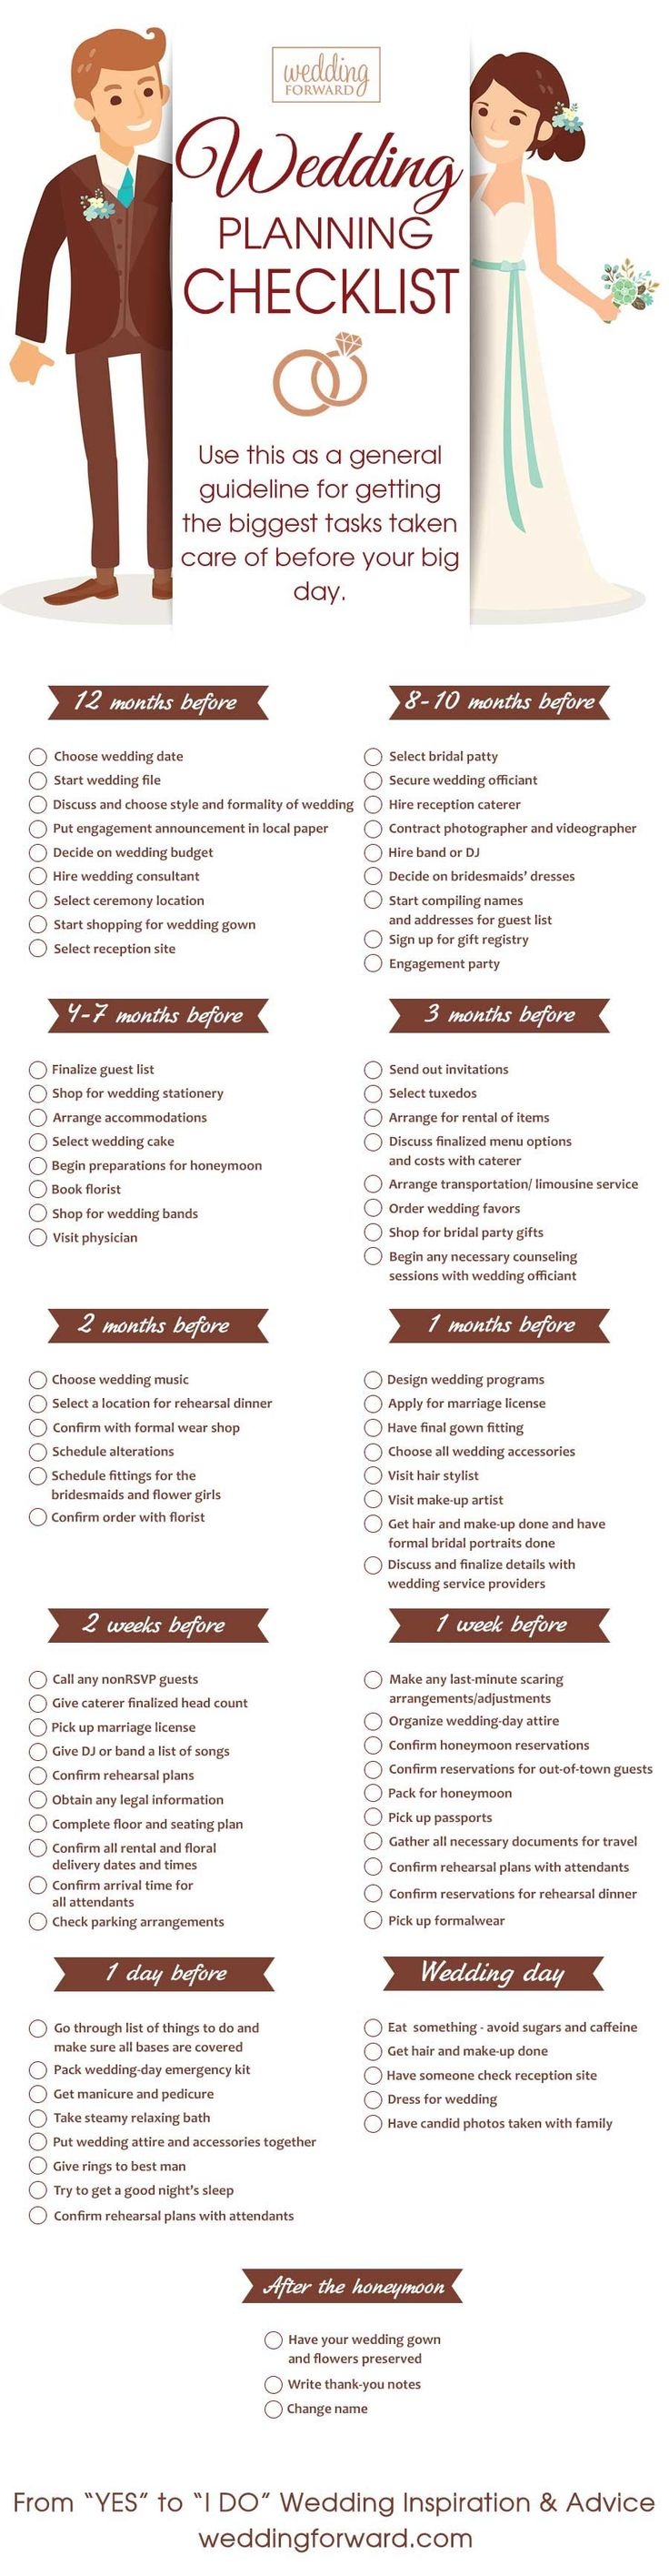 wedding planning timeline checklist